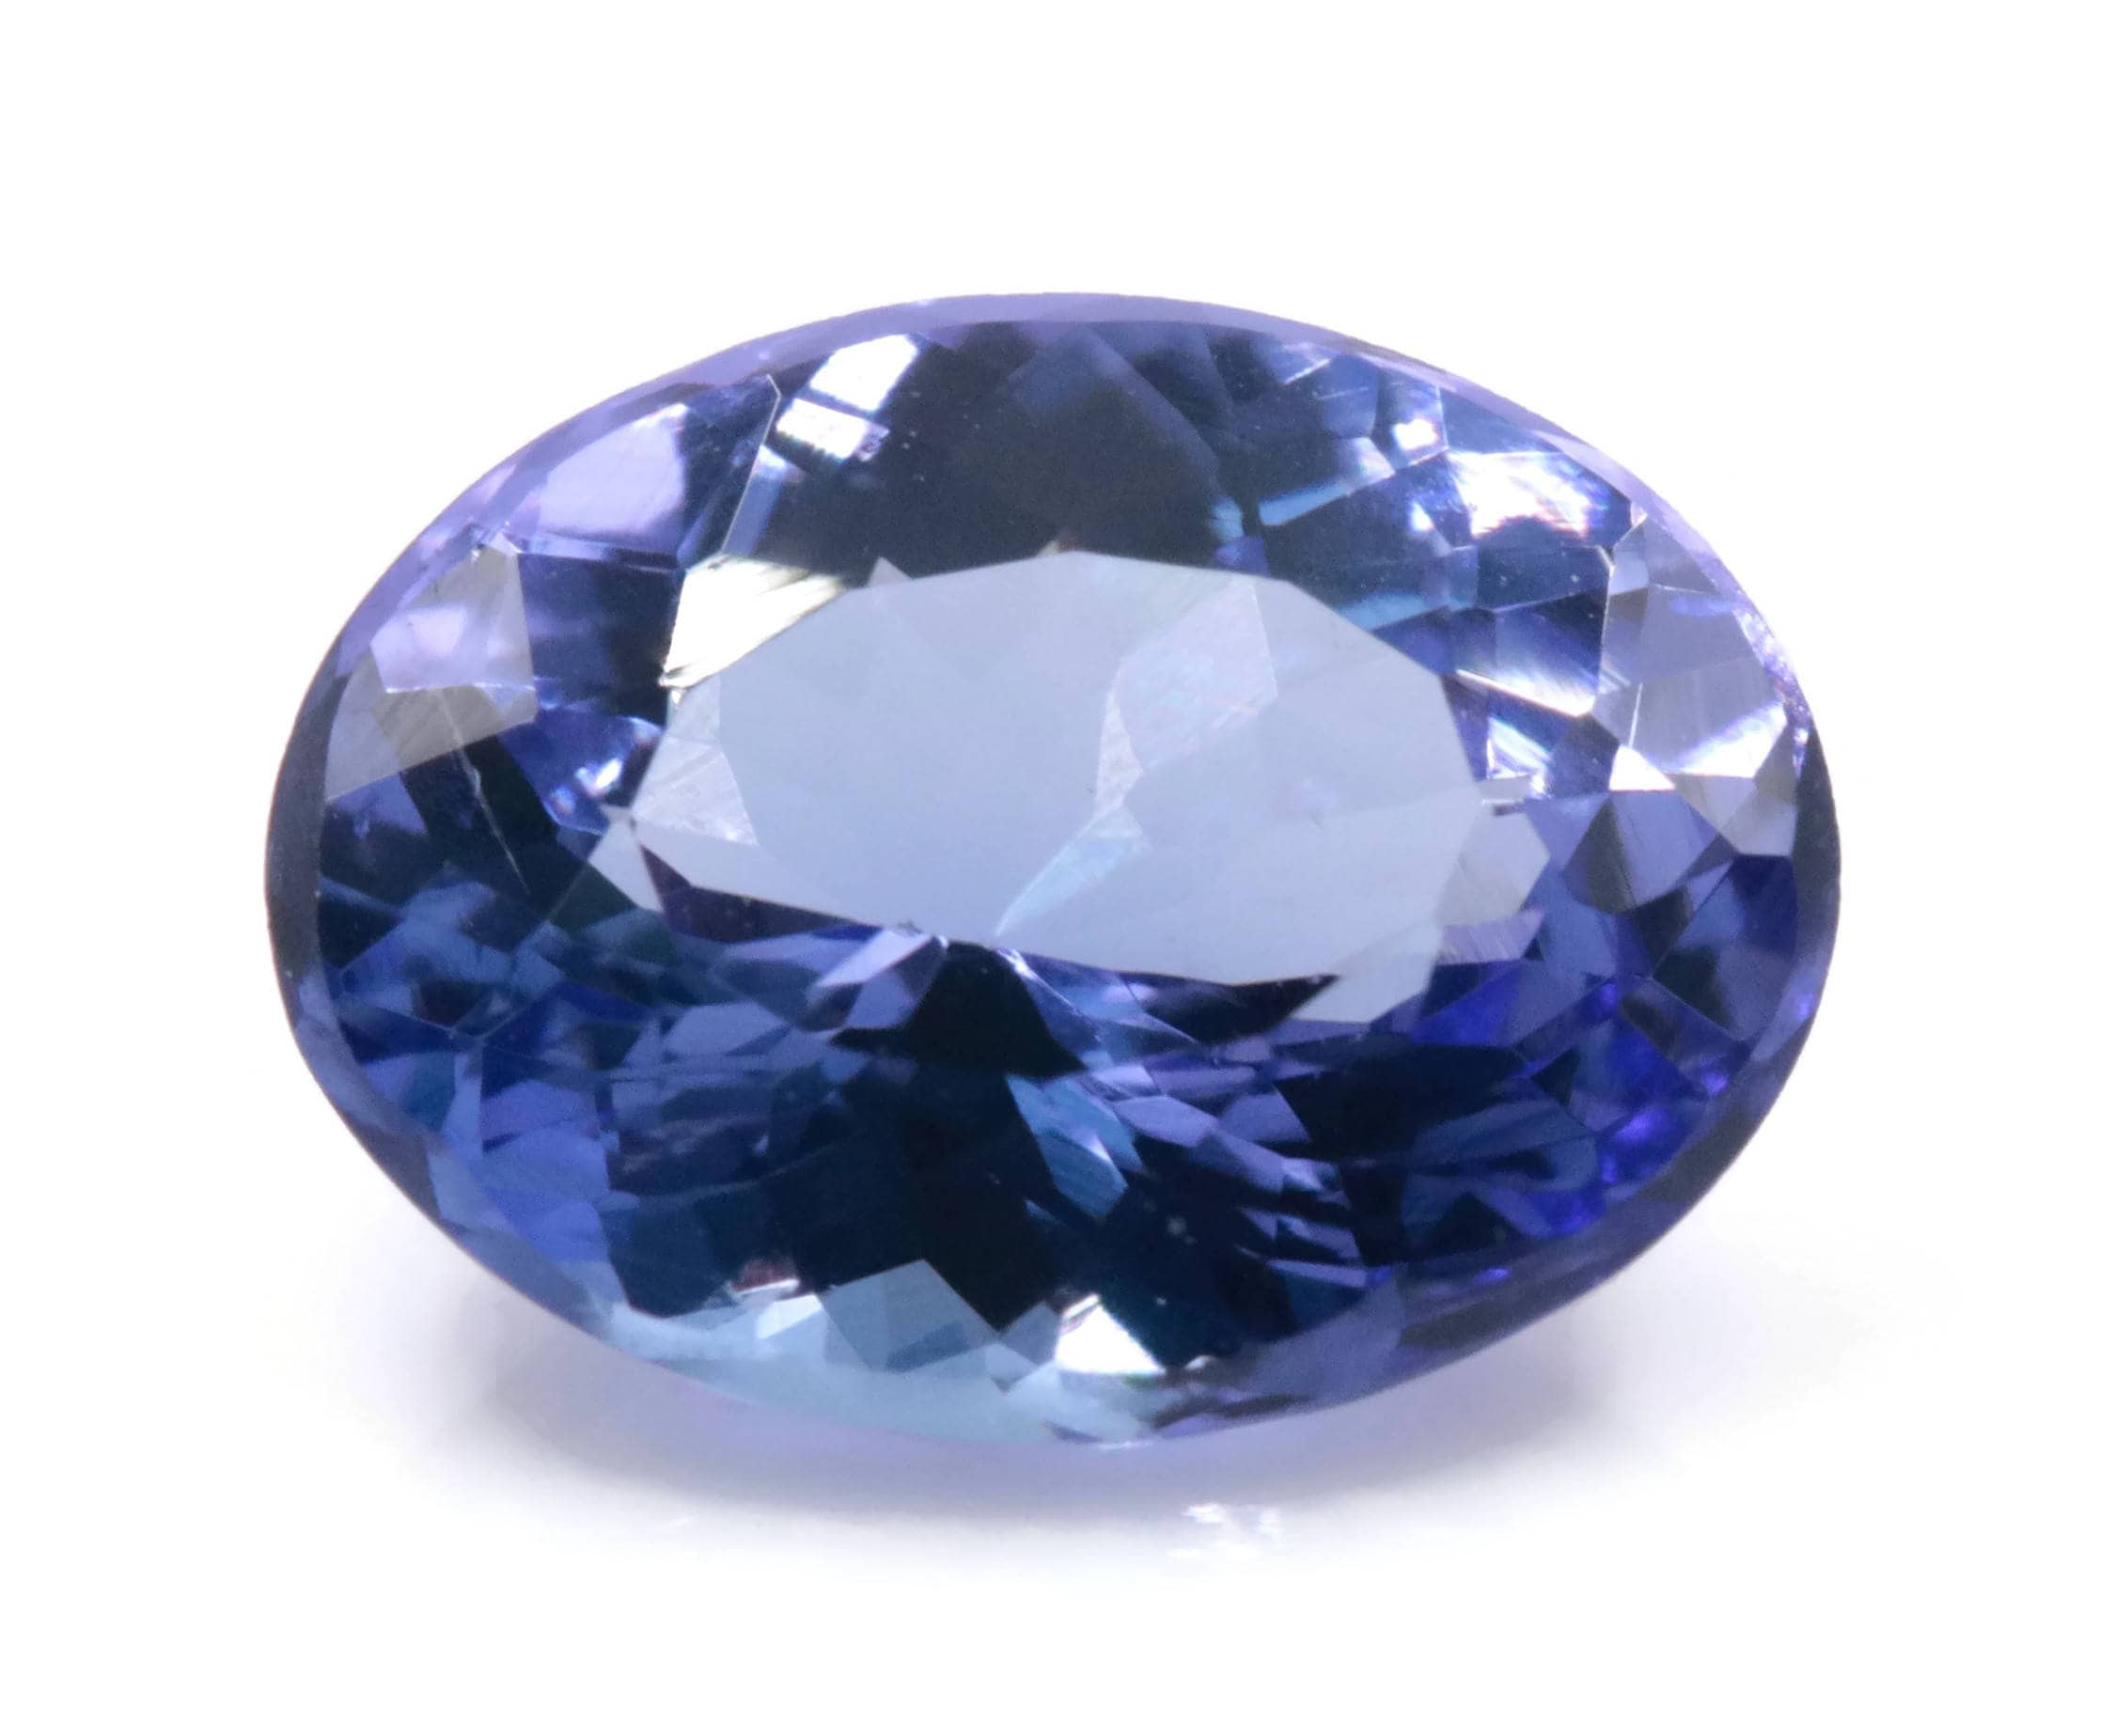 zirconia loose gemstones on natural alibaba rough product detail marquise tanzanite cubic com bulk cut buy